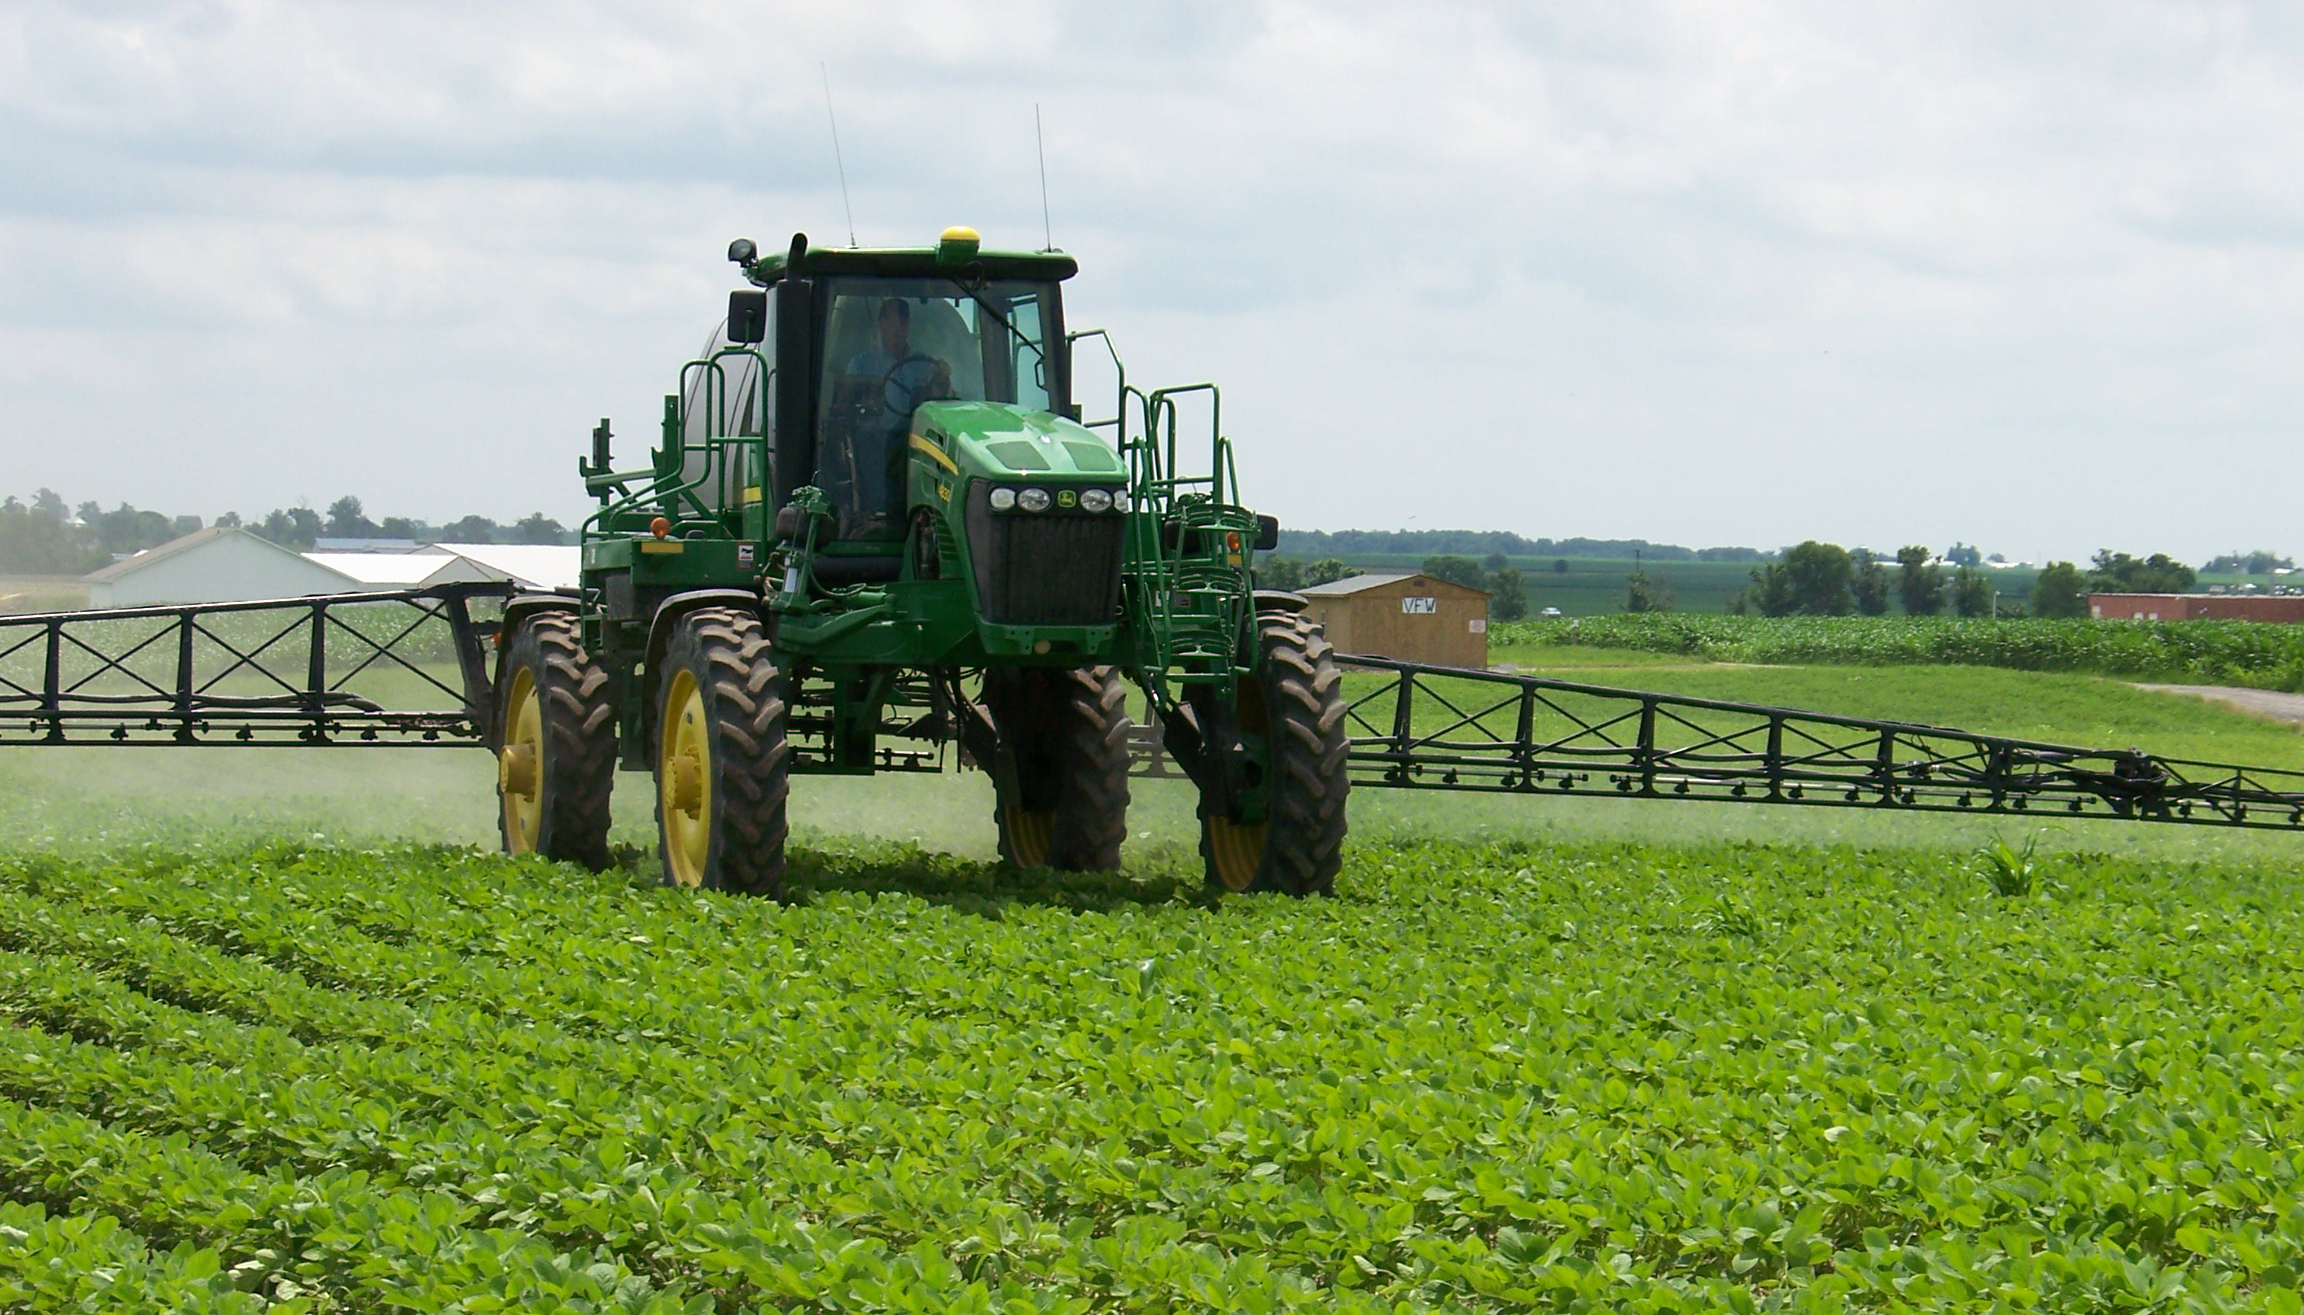 U.S. EPA Announces 2020 Dicamba Registration Decision